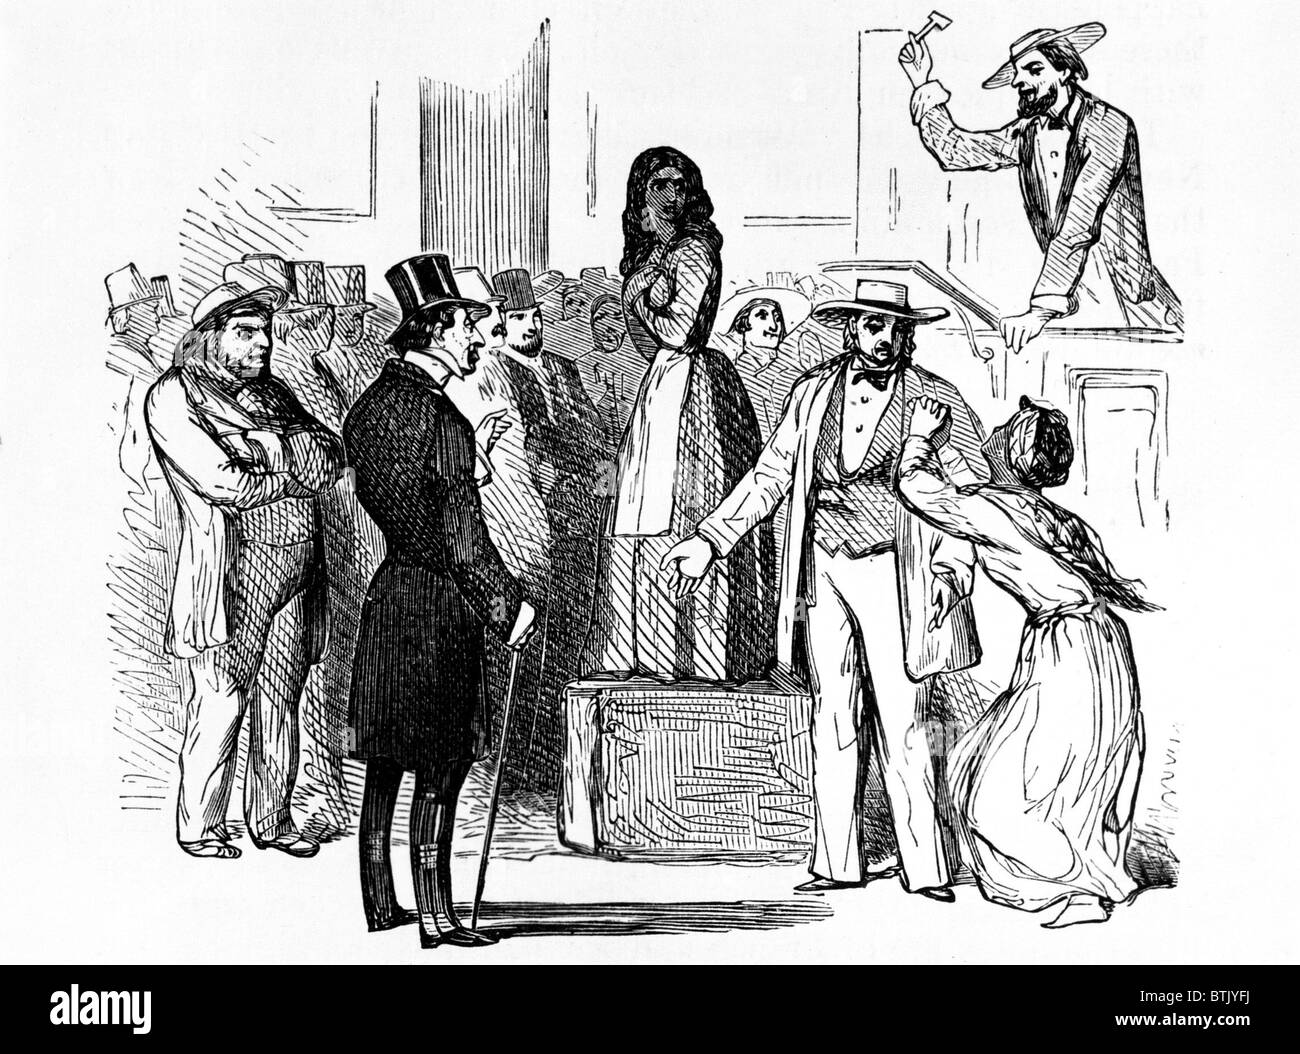 Slave auction in the American South, early 1800s Stock Photo